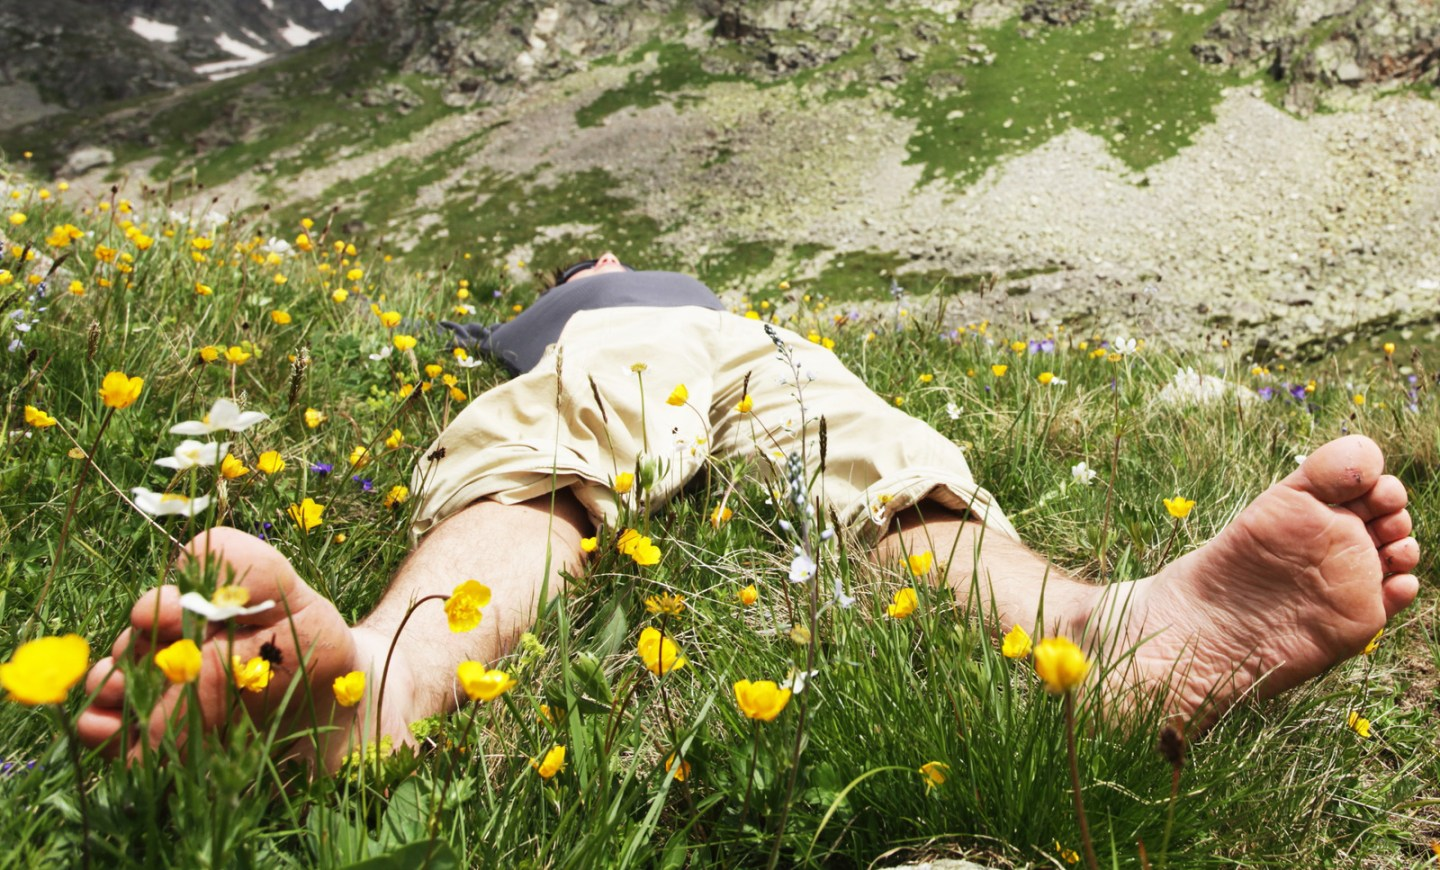 Relaxing boy in mountains